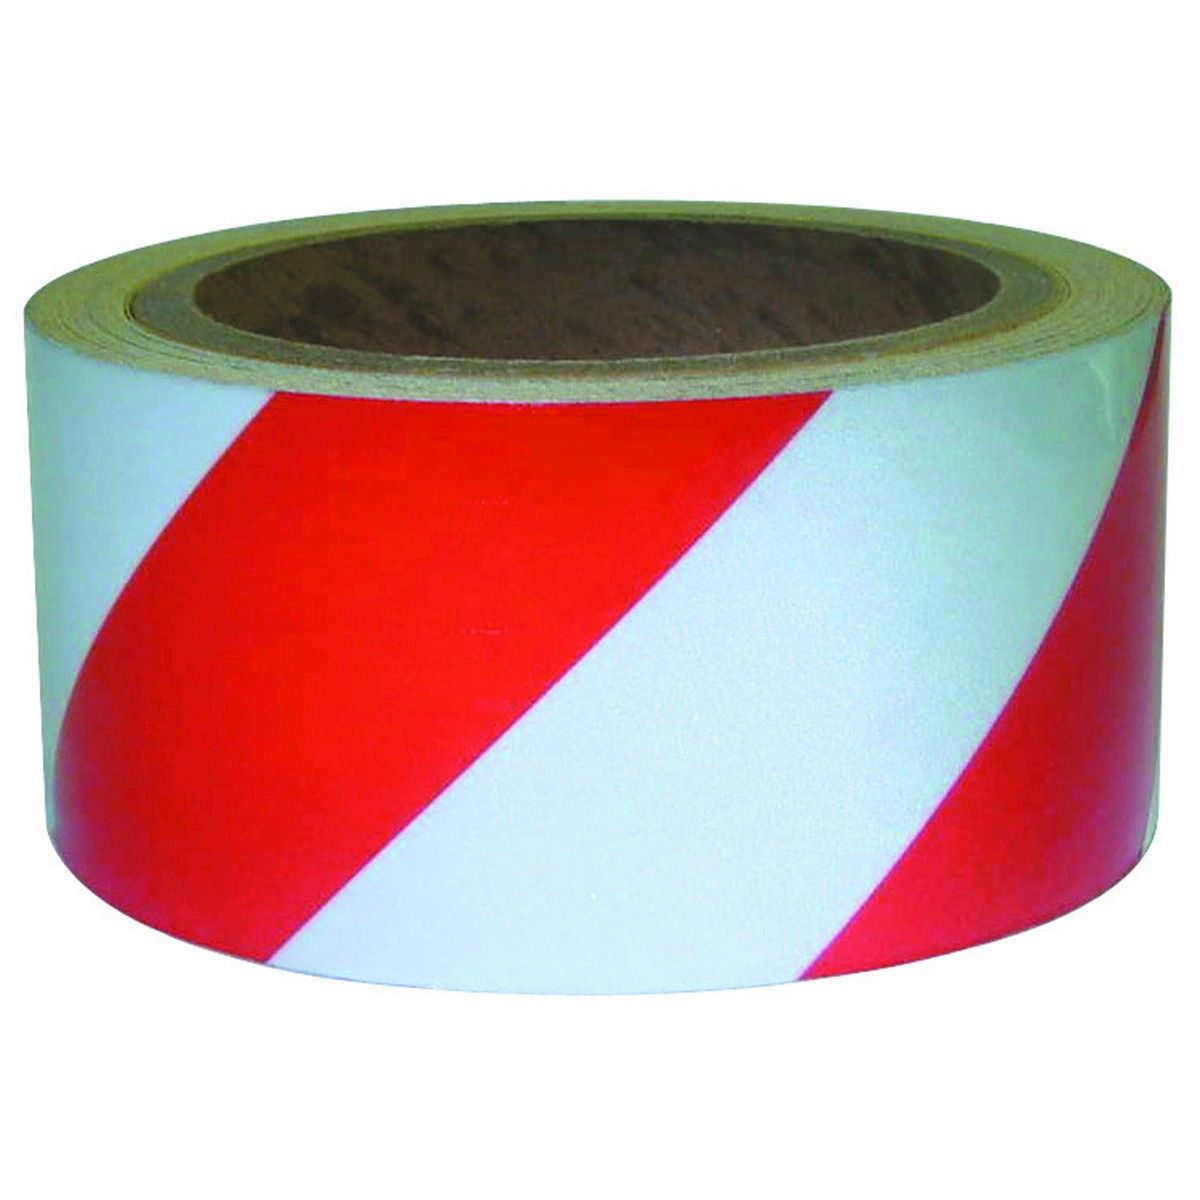 2 In X 30 Ft Reflective Tape Red Silver Stripes Reflective Tape Tape Reflective